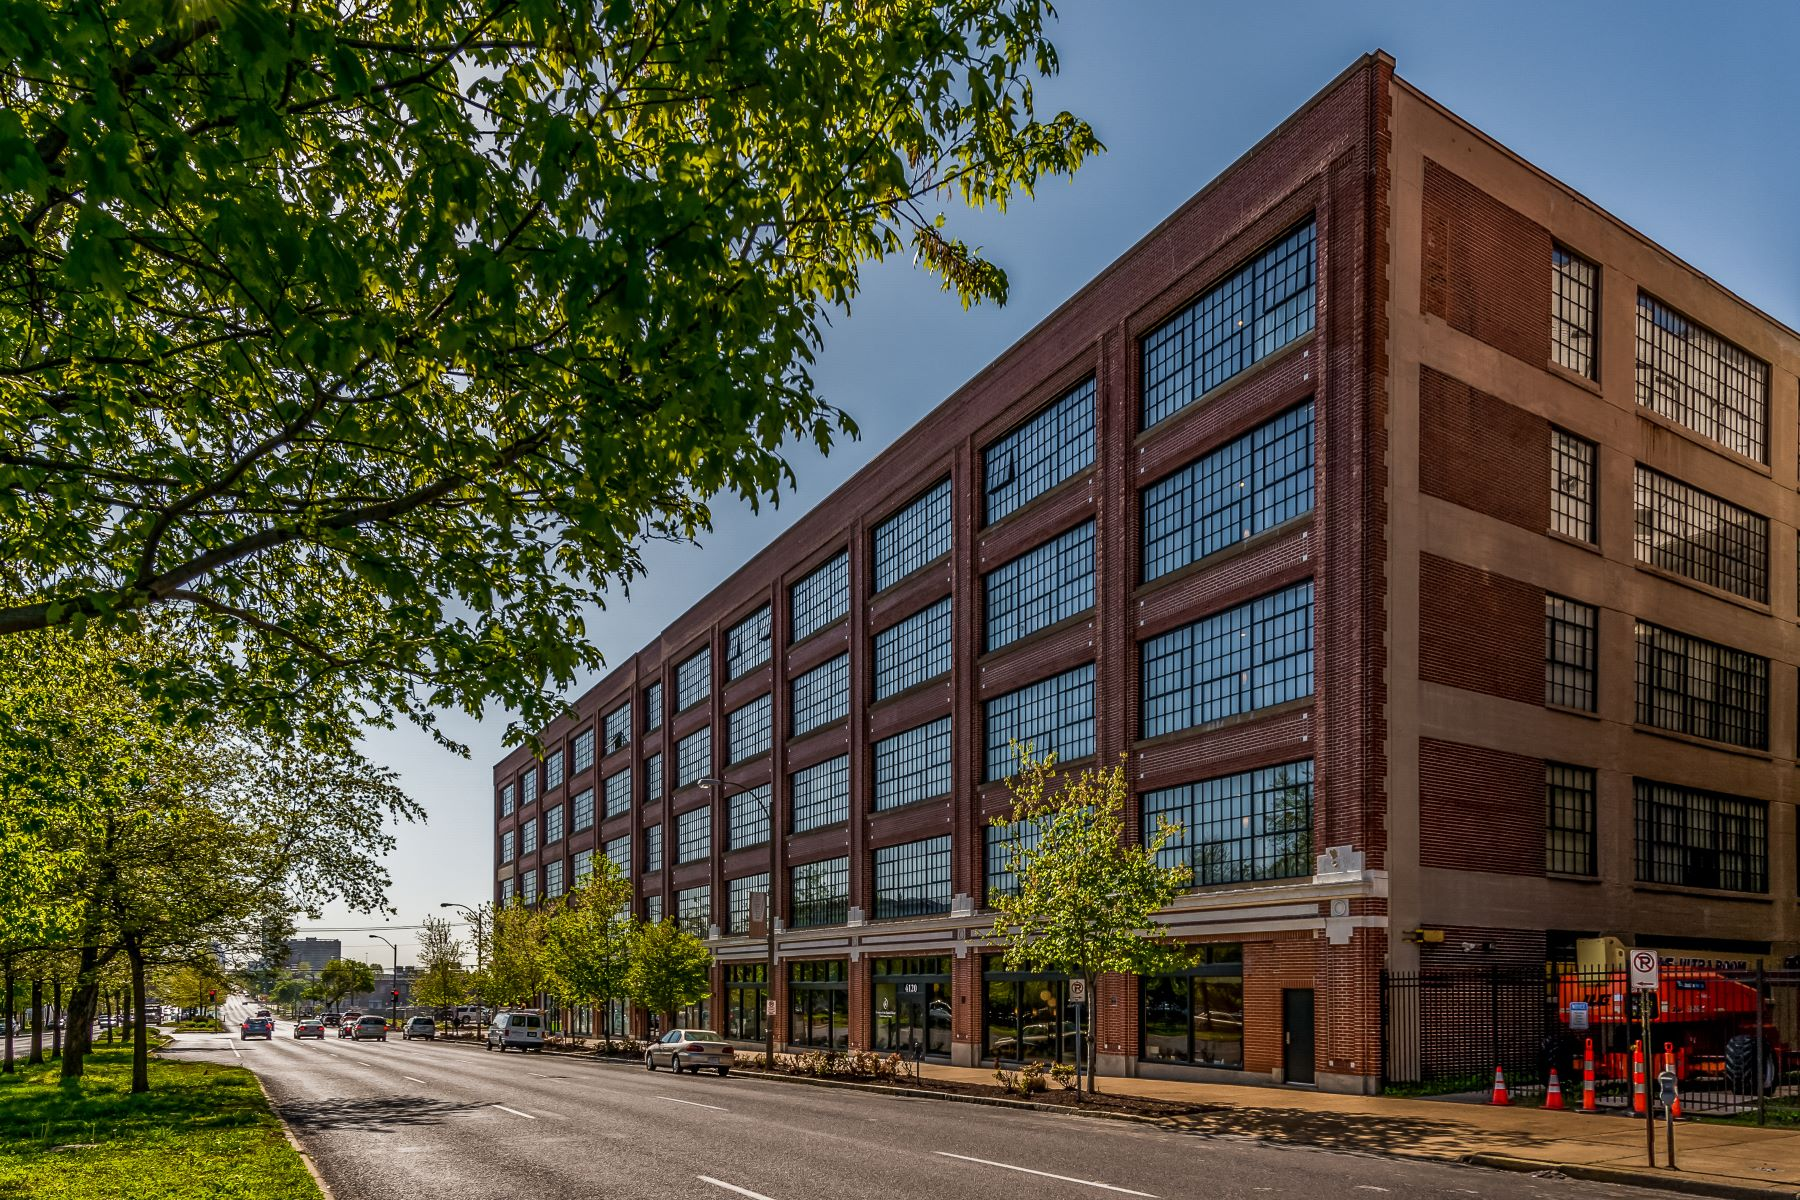 Property for Sale at West End Lofts #320 4100 Forest Park #320 St. Louis, Missouri 63108 United States